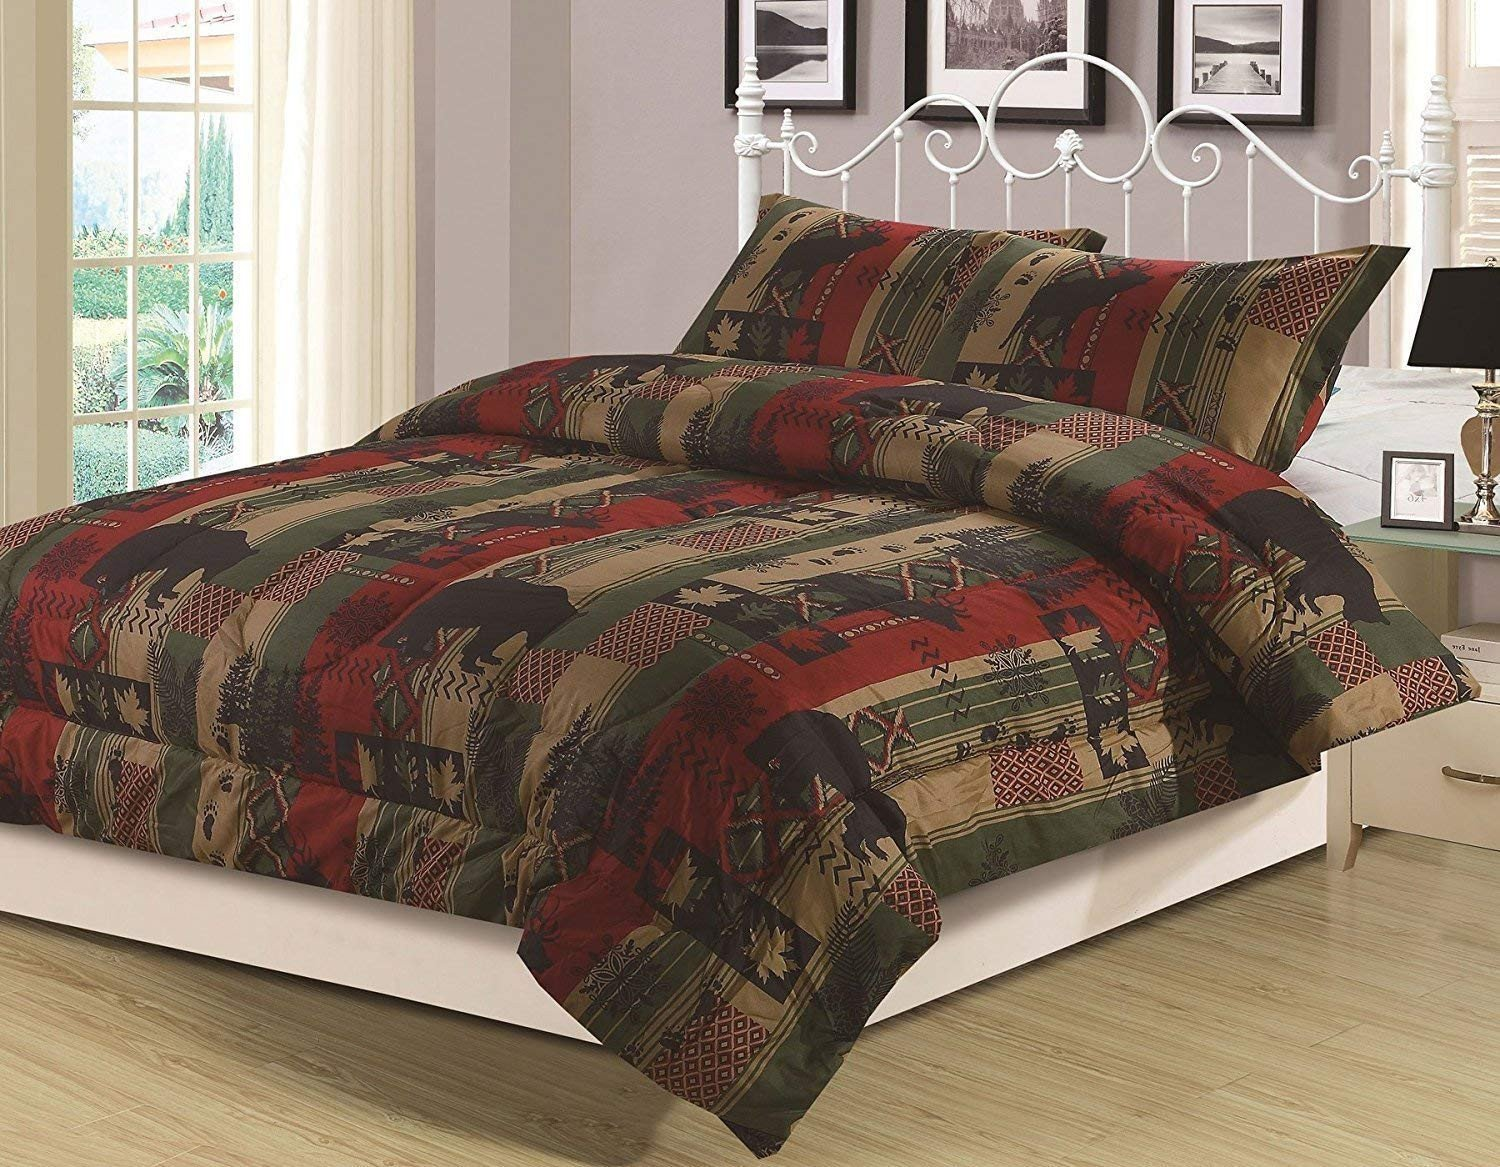 Twin Xl Bedroom Set Unique Howplumb Rustic southwest Twin forter 2 Piece Bedding Set Bear Cabin Lodge Nature Wildlife